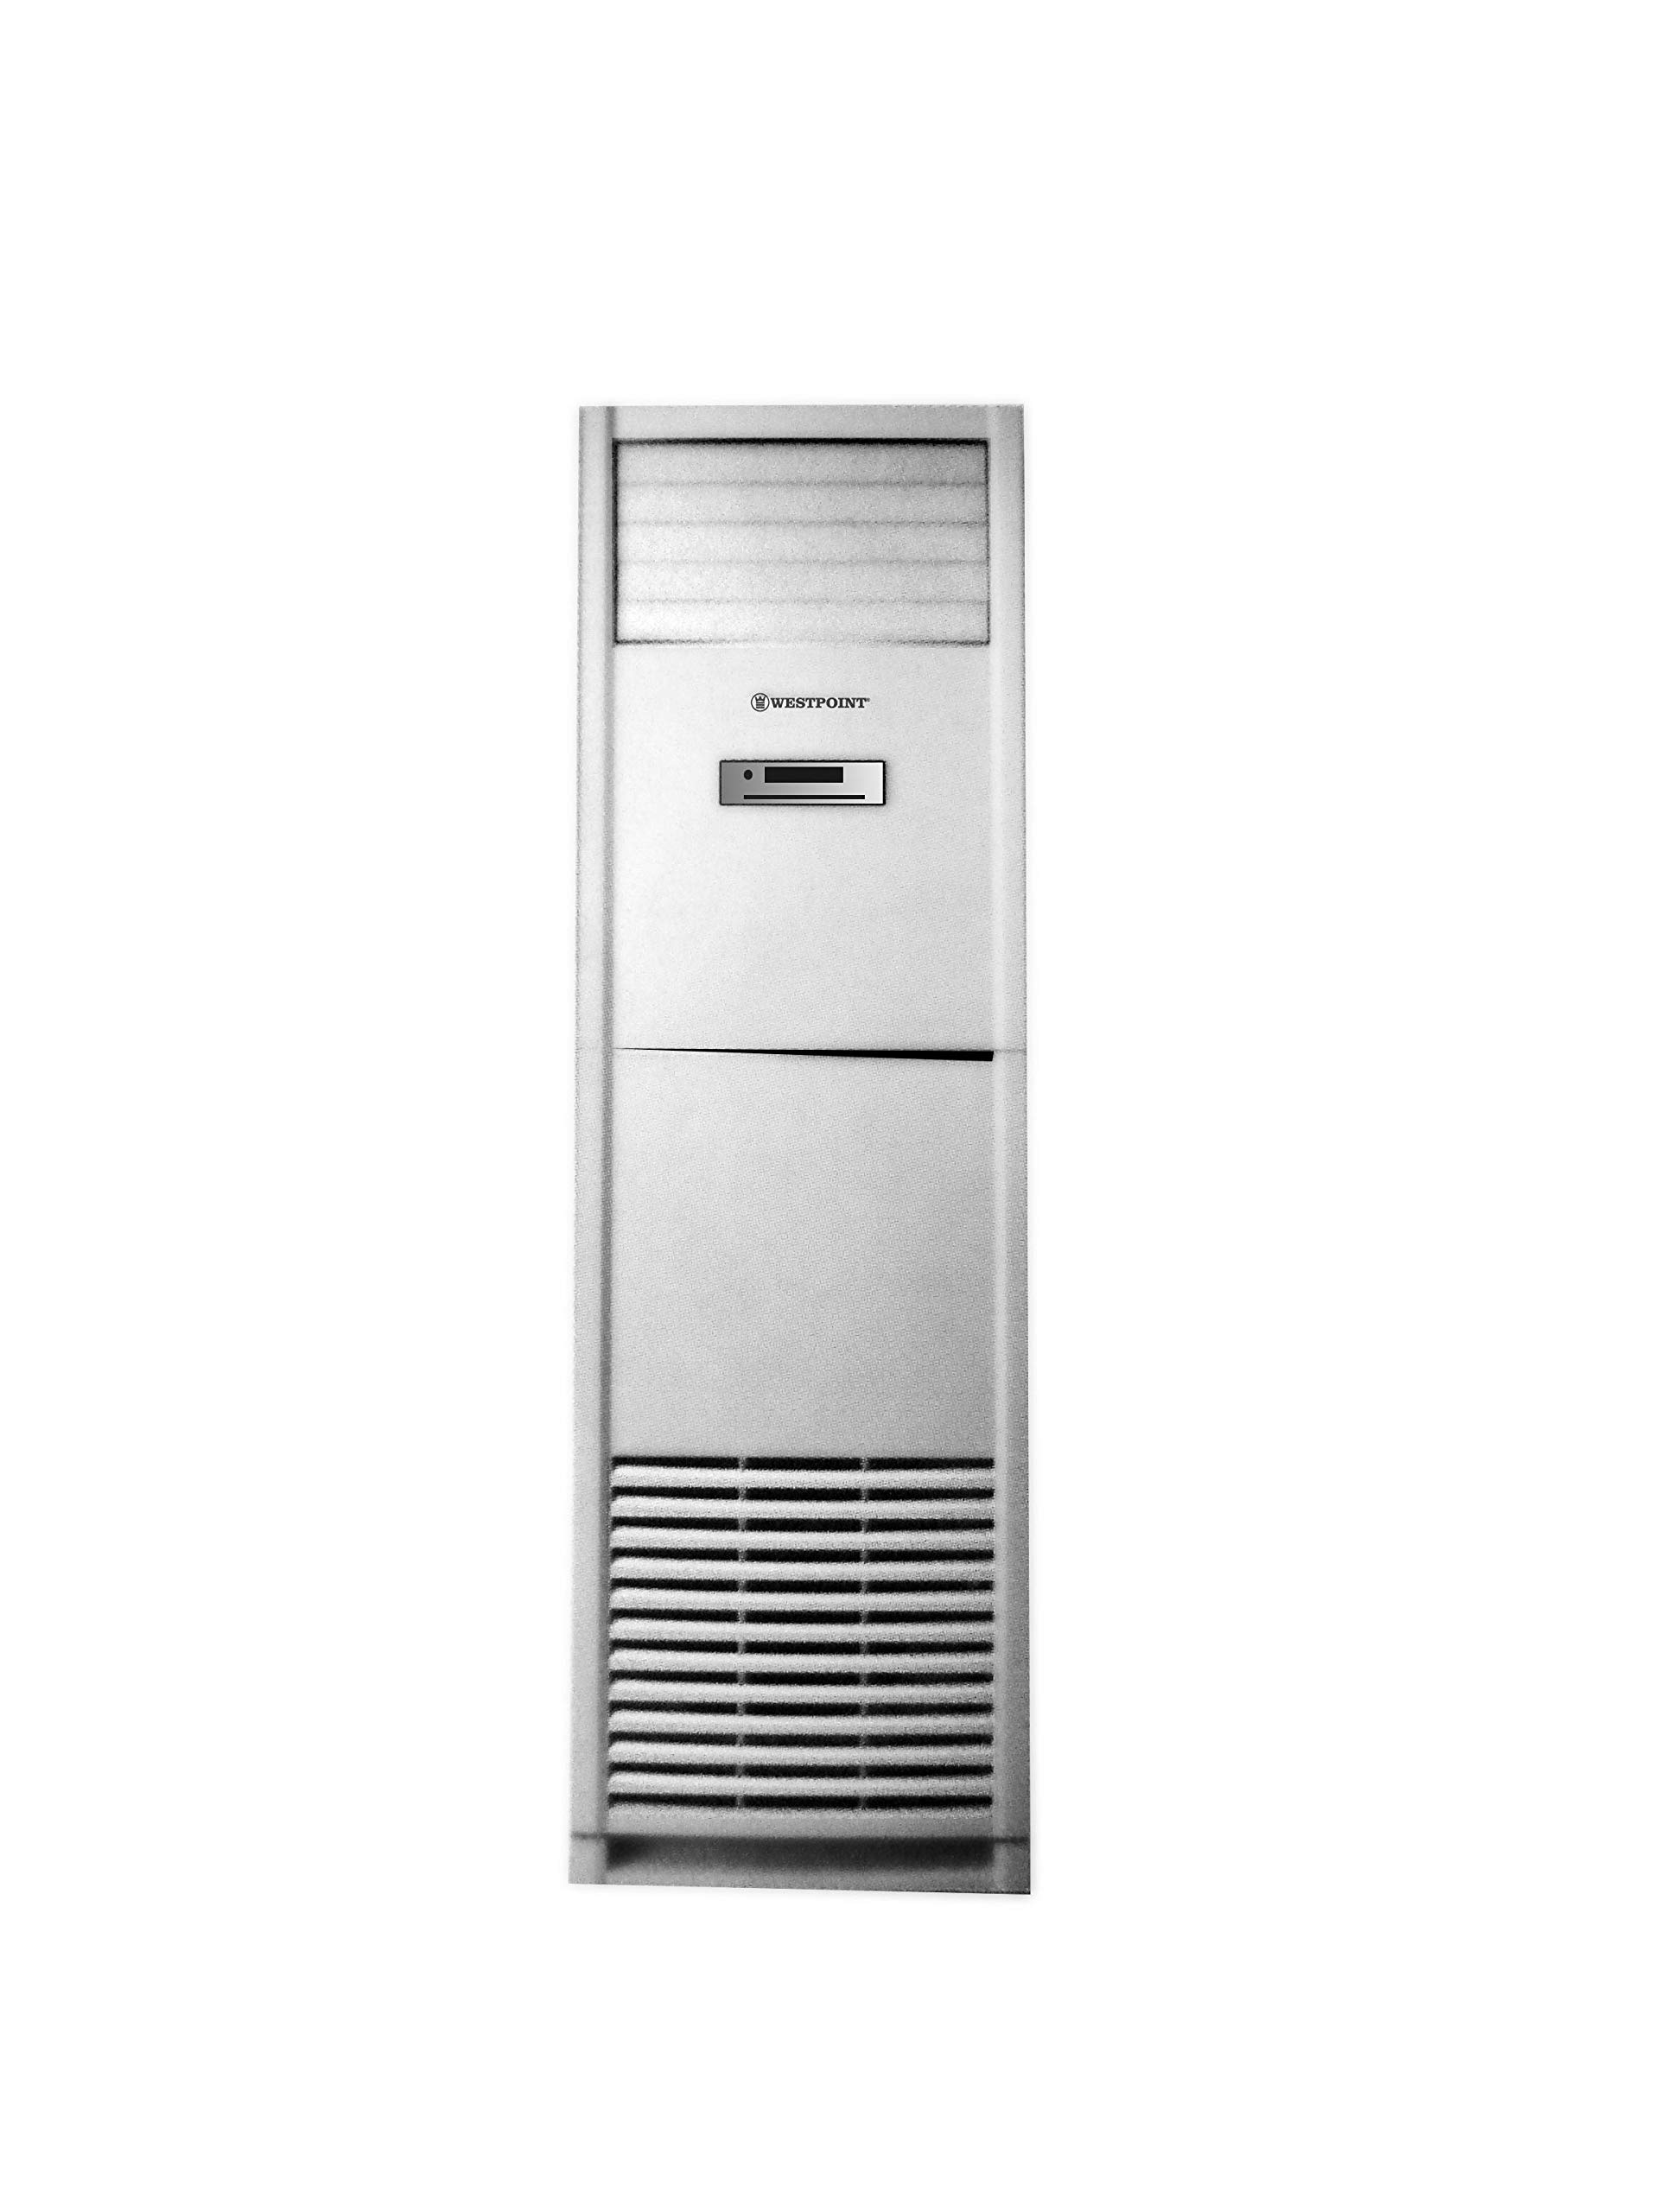 Westpoint 24000 BTU 2 Ton Floor Standing Air Conditioner With T3 Rotary  Compressor WAM-2416TRA